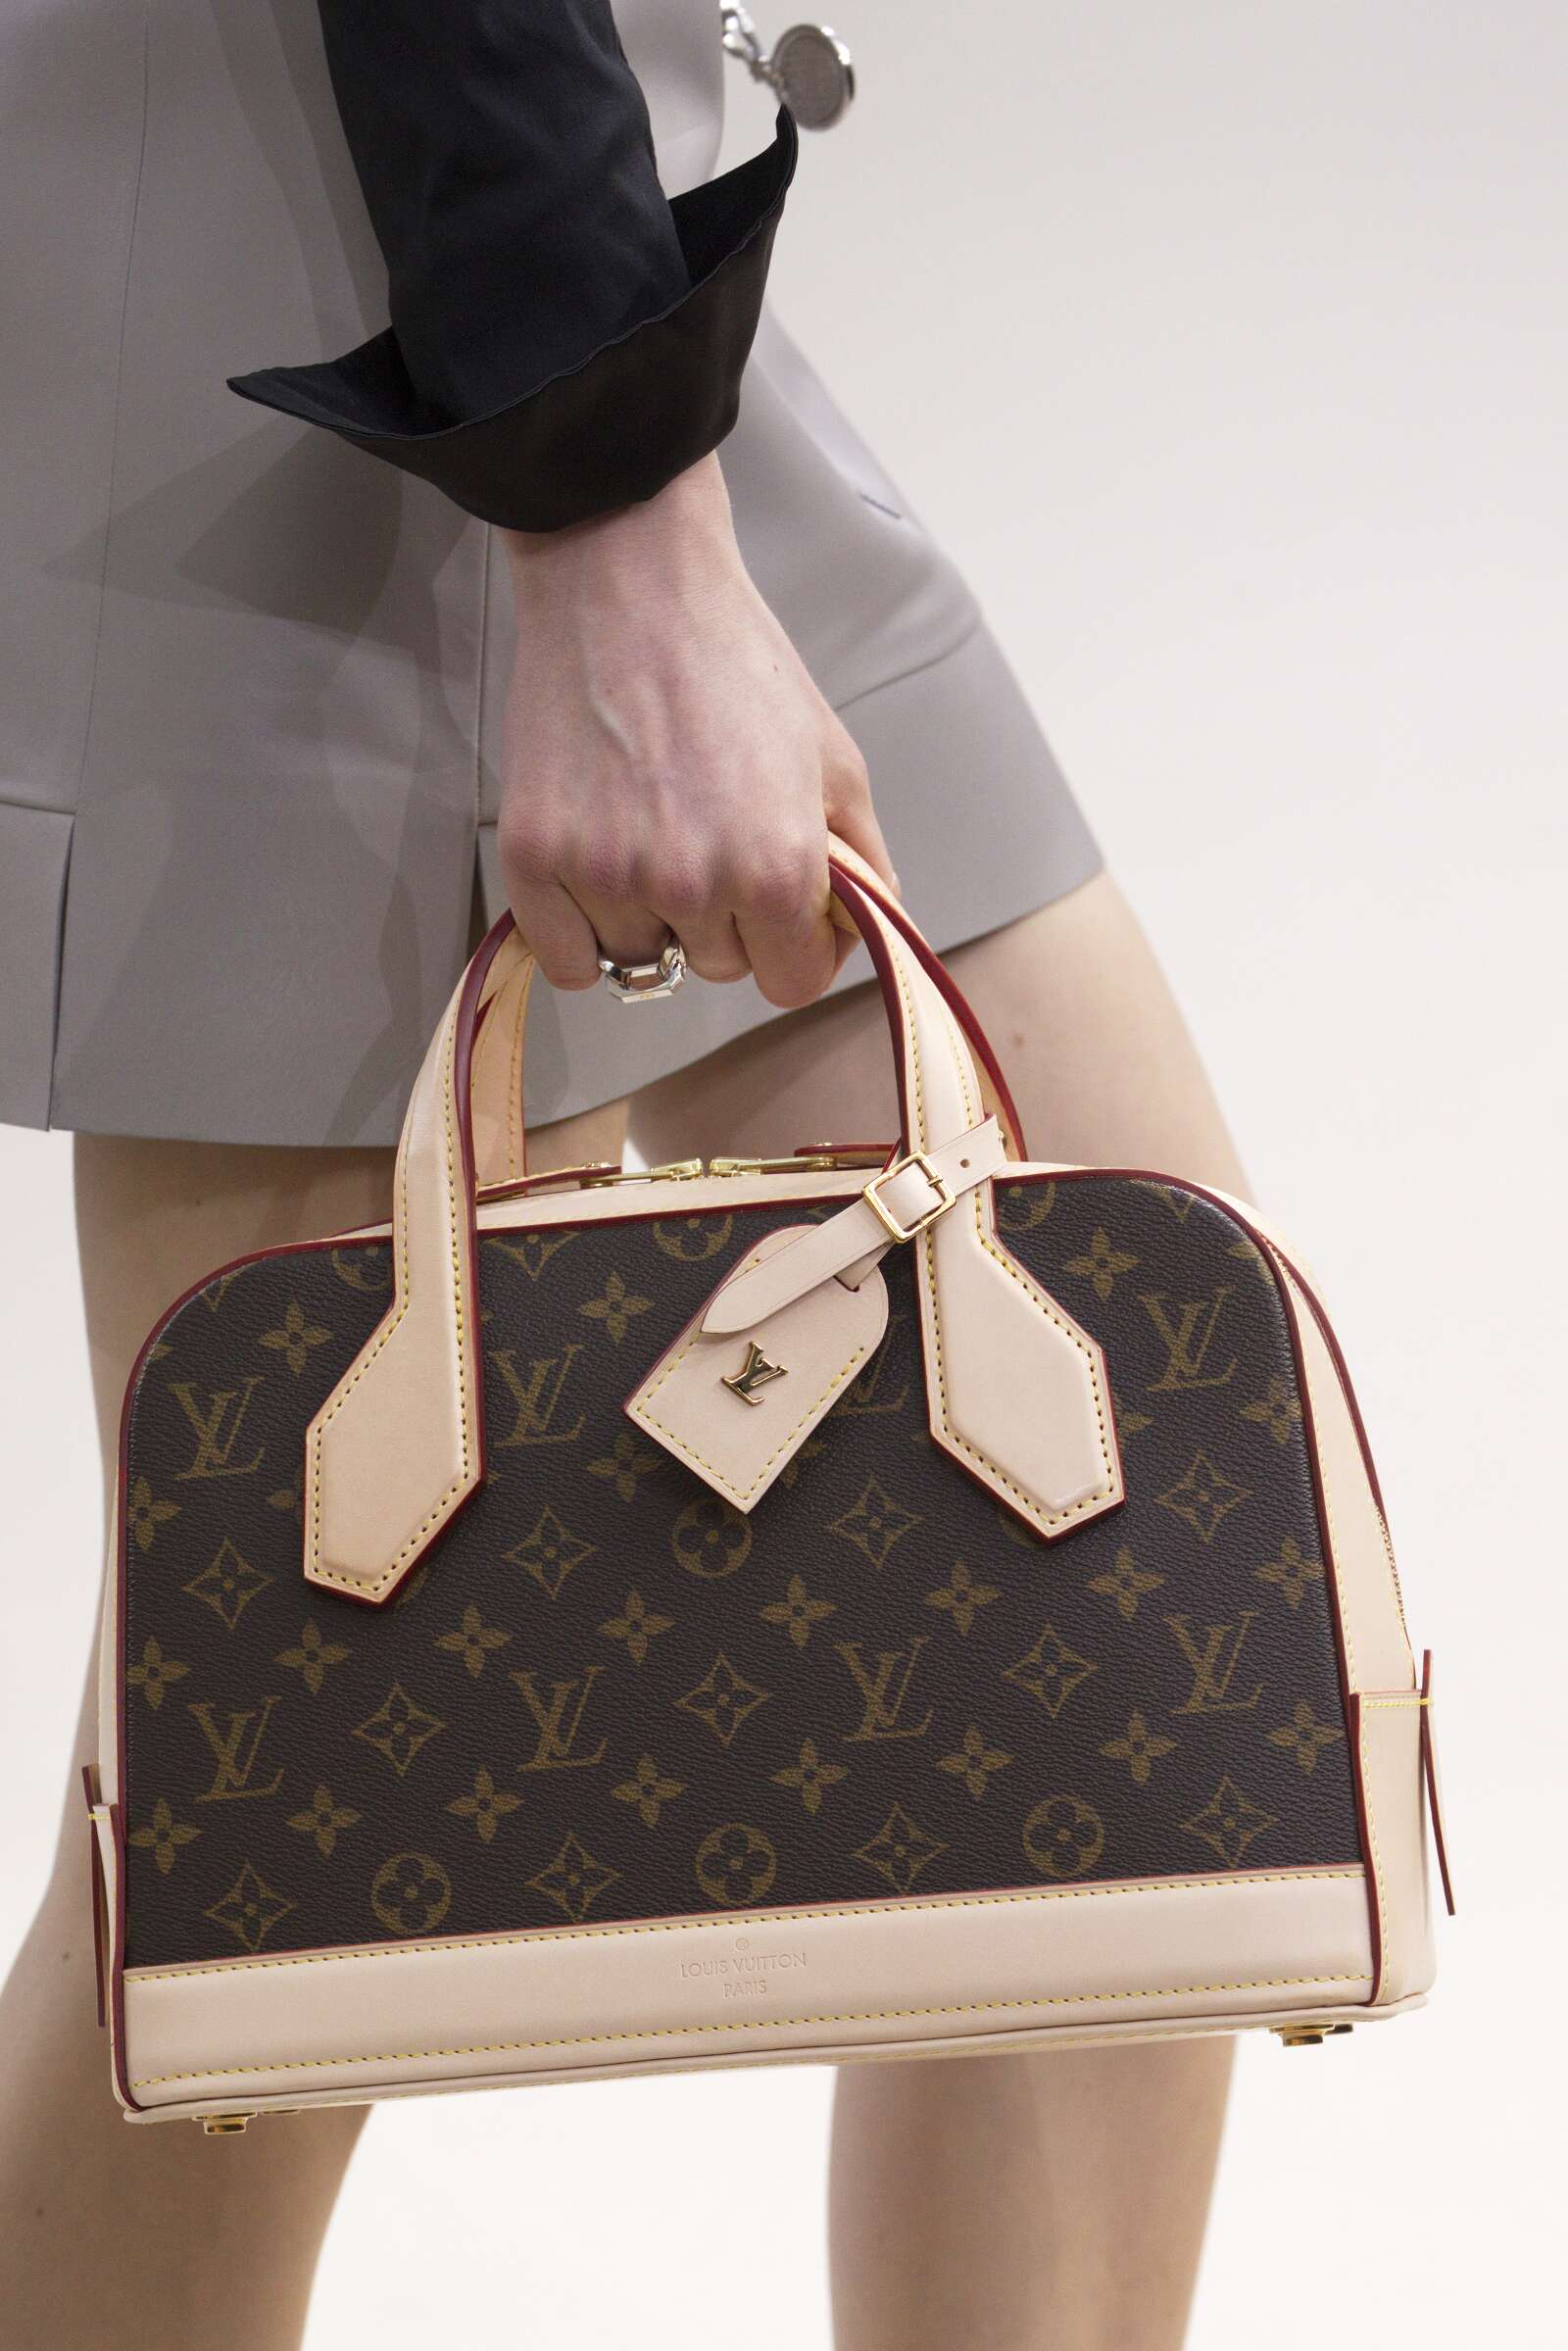 Fashion Winter Trends 2015 2016 Louis Vuitton Bag Details